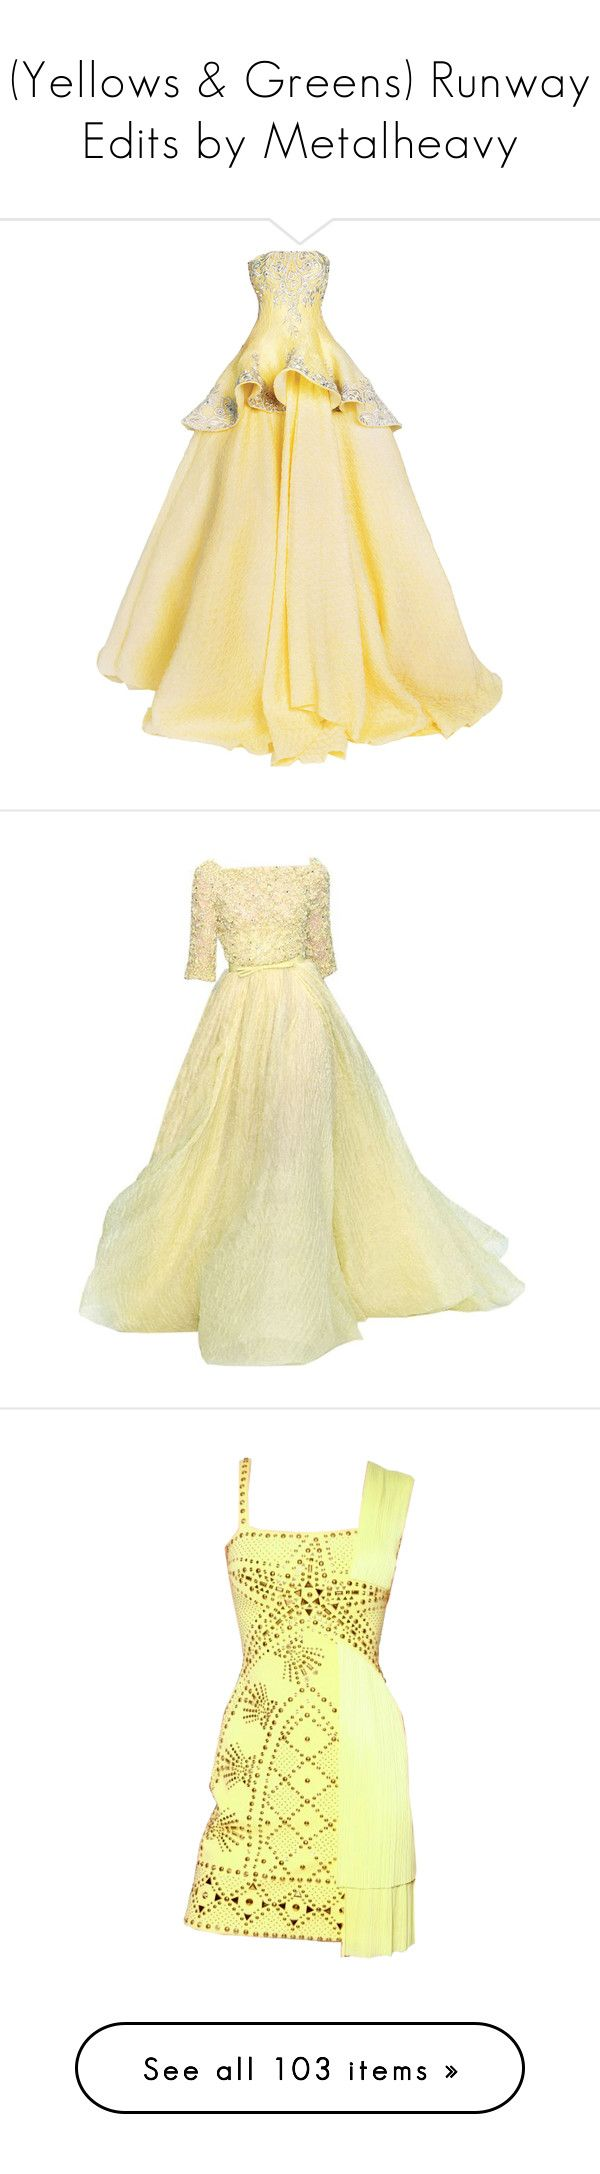 """(Yellows & Greens) Runway Edits by Metalheavy"" by metalheavy ❤ liked on Polyvore featuring dresses, gowns, long dresses, rami kadi, elie saab, long dress, elie saab gowns, elie saab evening gowns, beige long dress and beige gown"